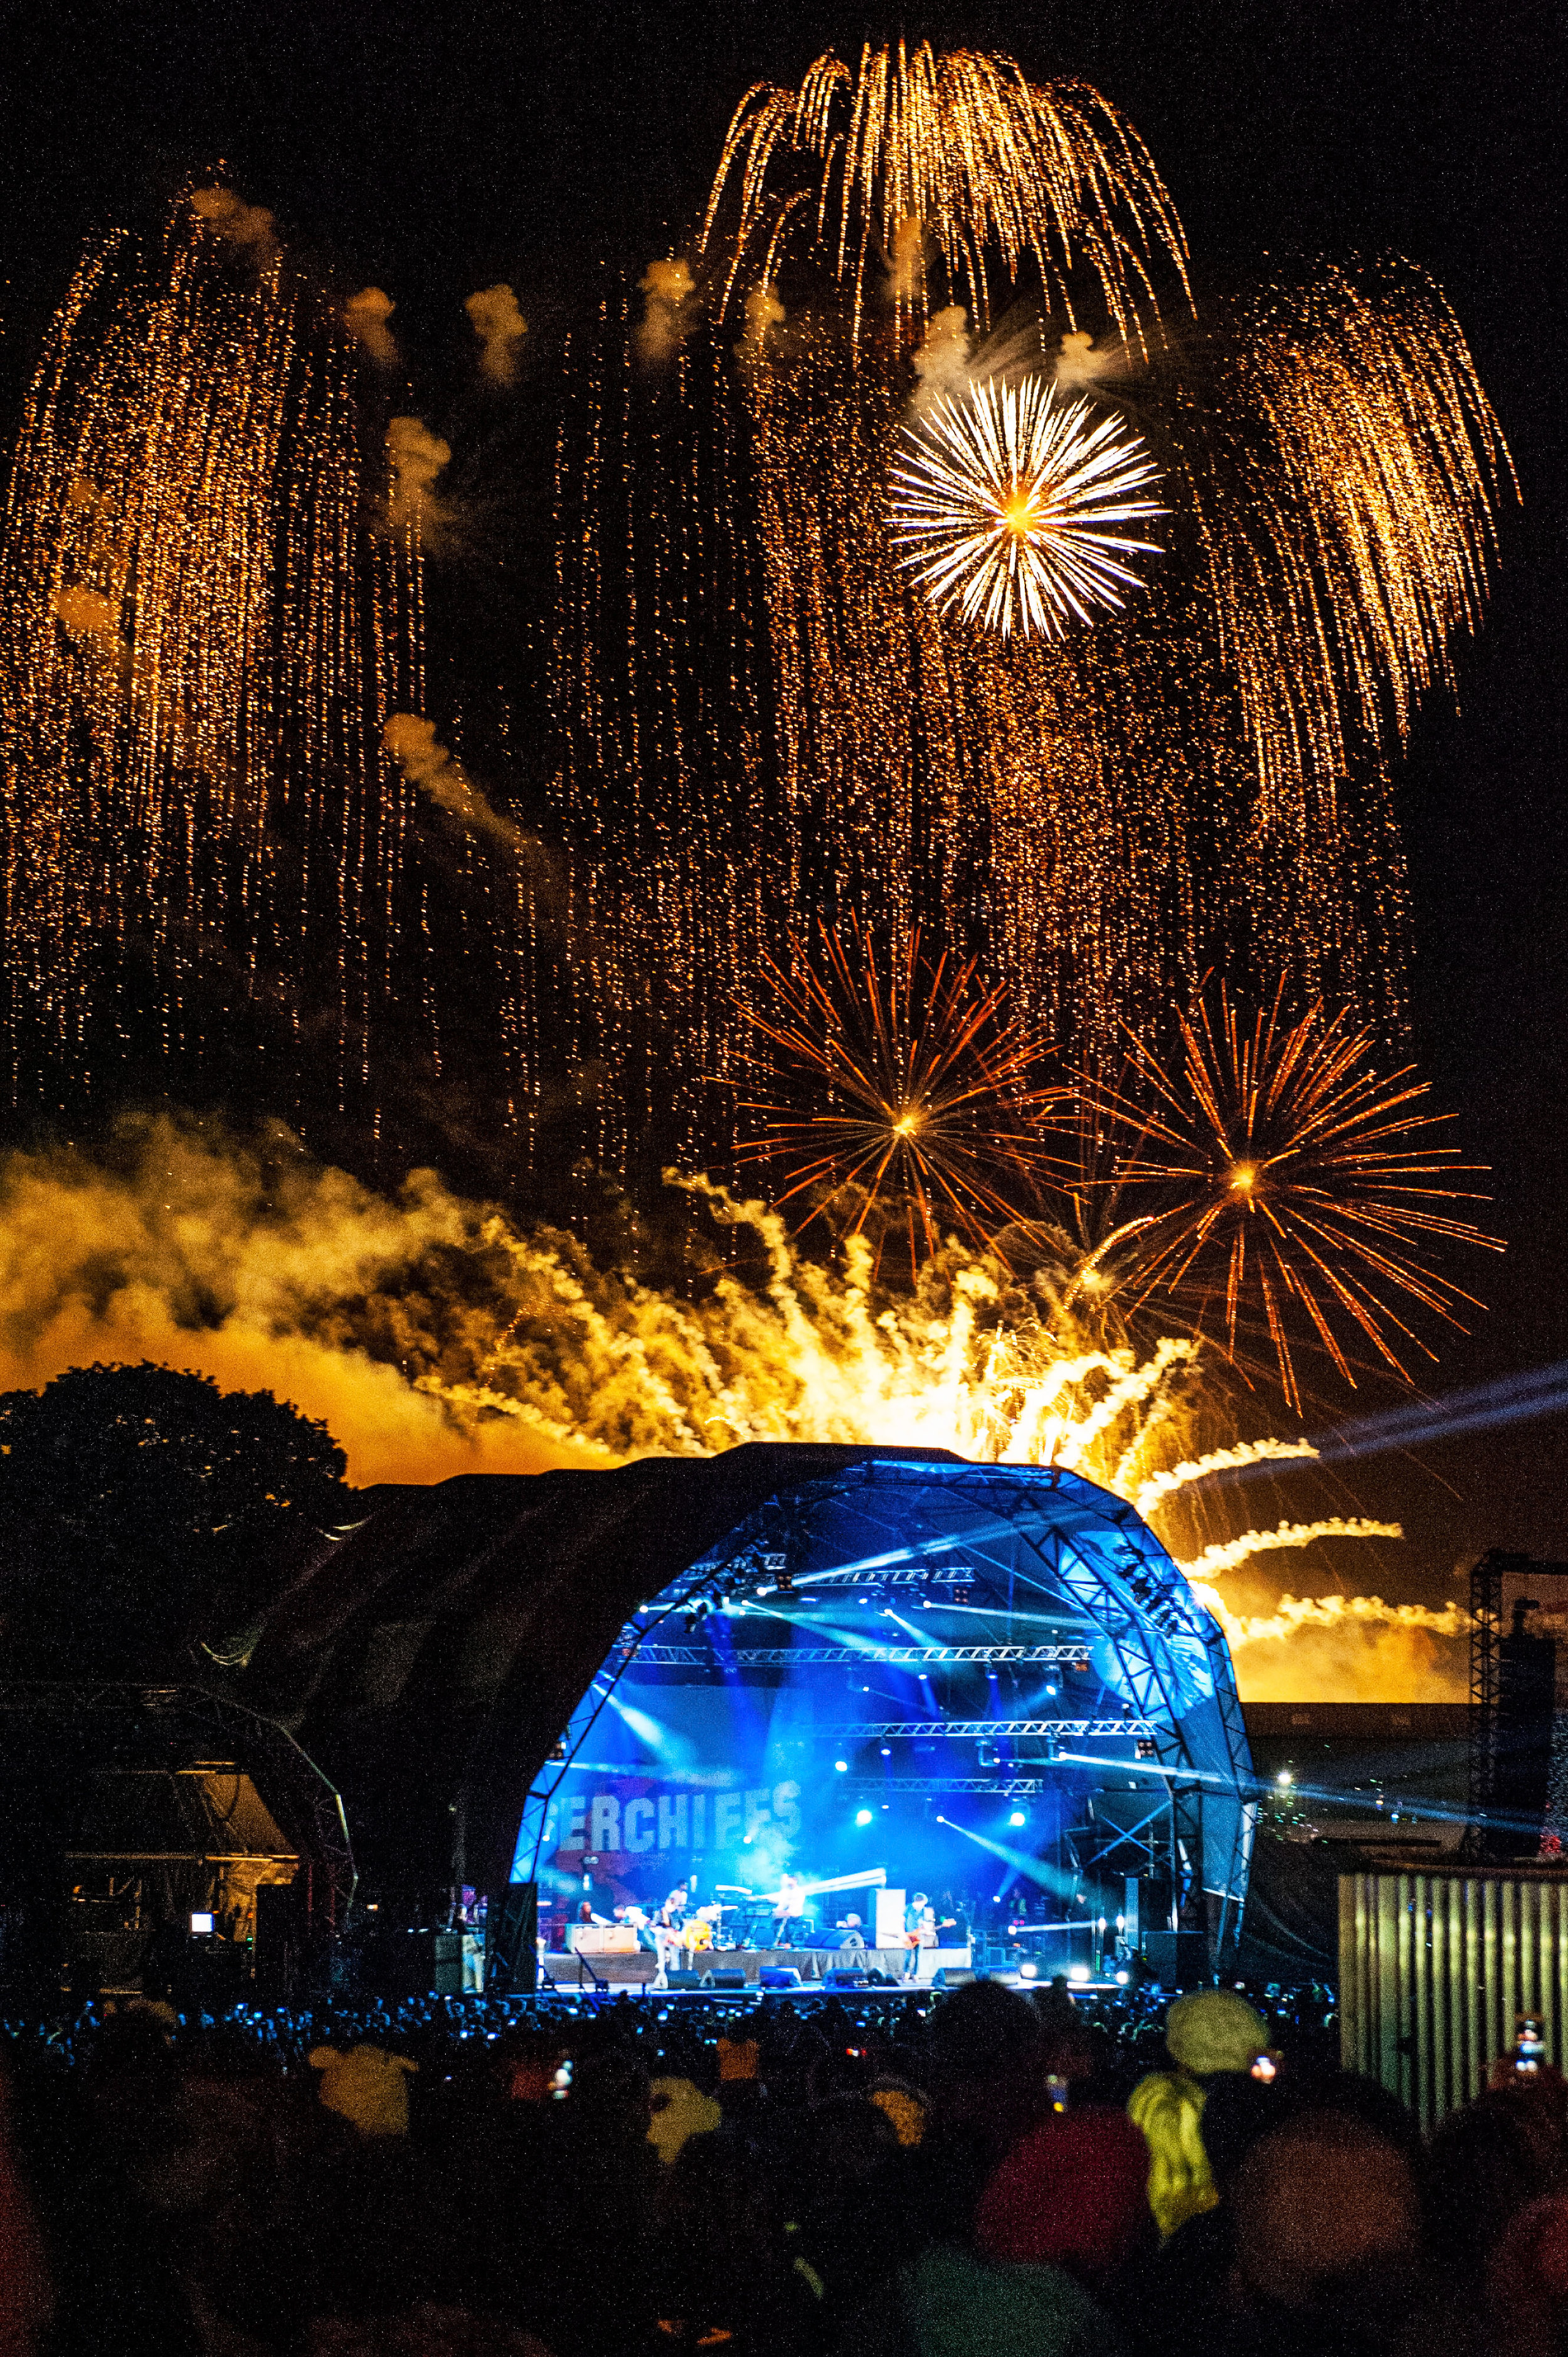 Star Fireworks at Carfest with The Kaiser Chiefs raising money for BBC's Children In Need.